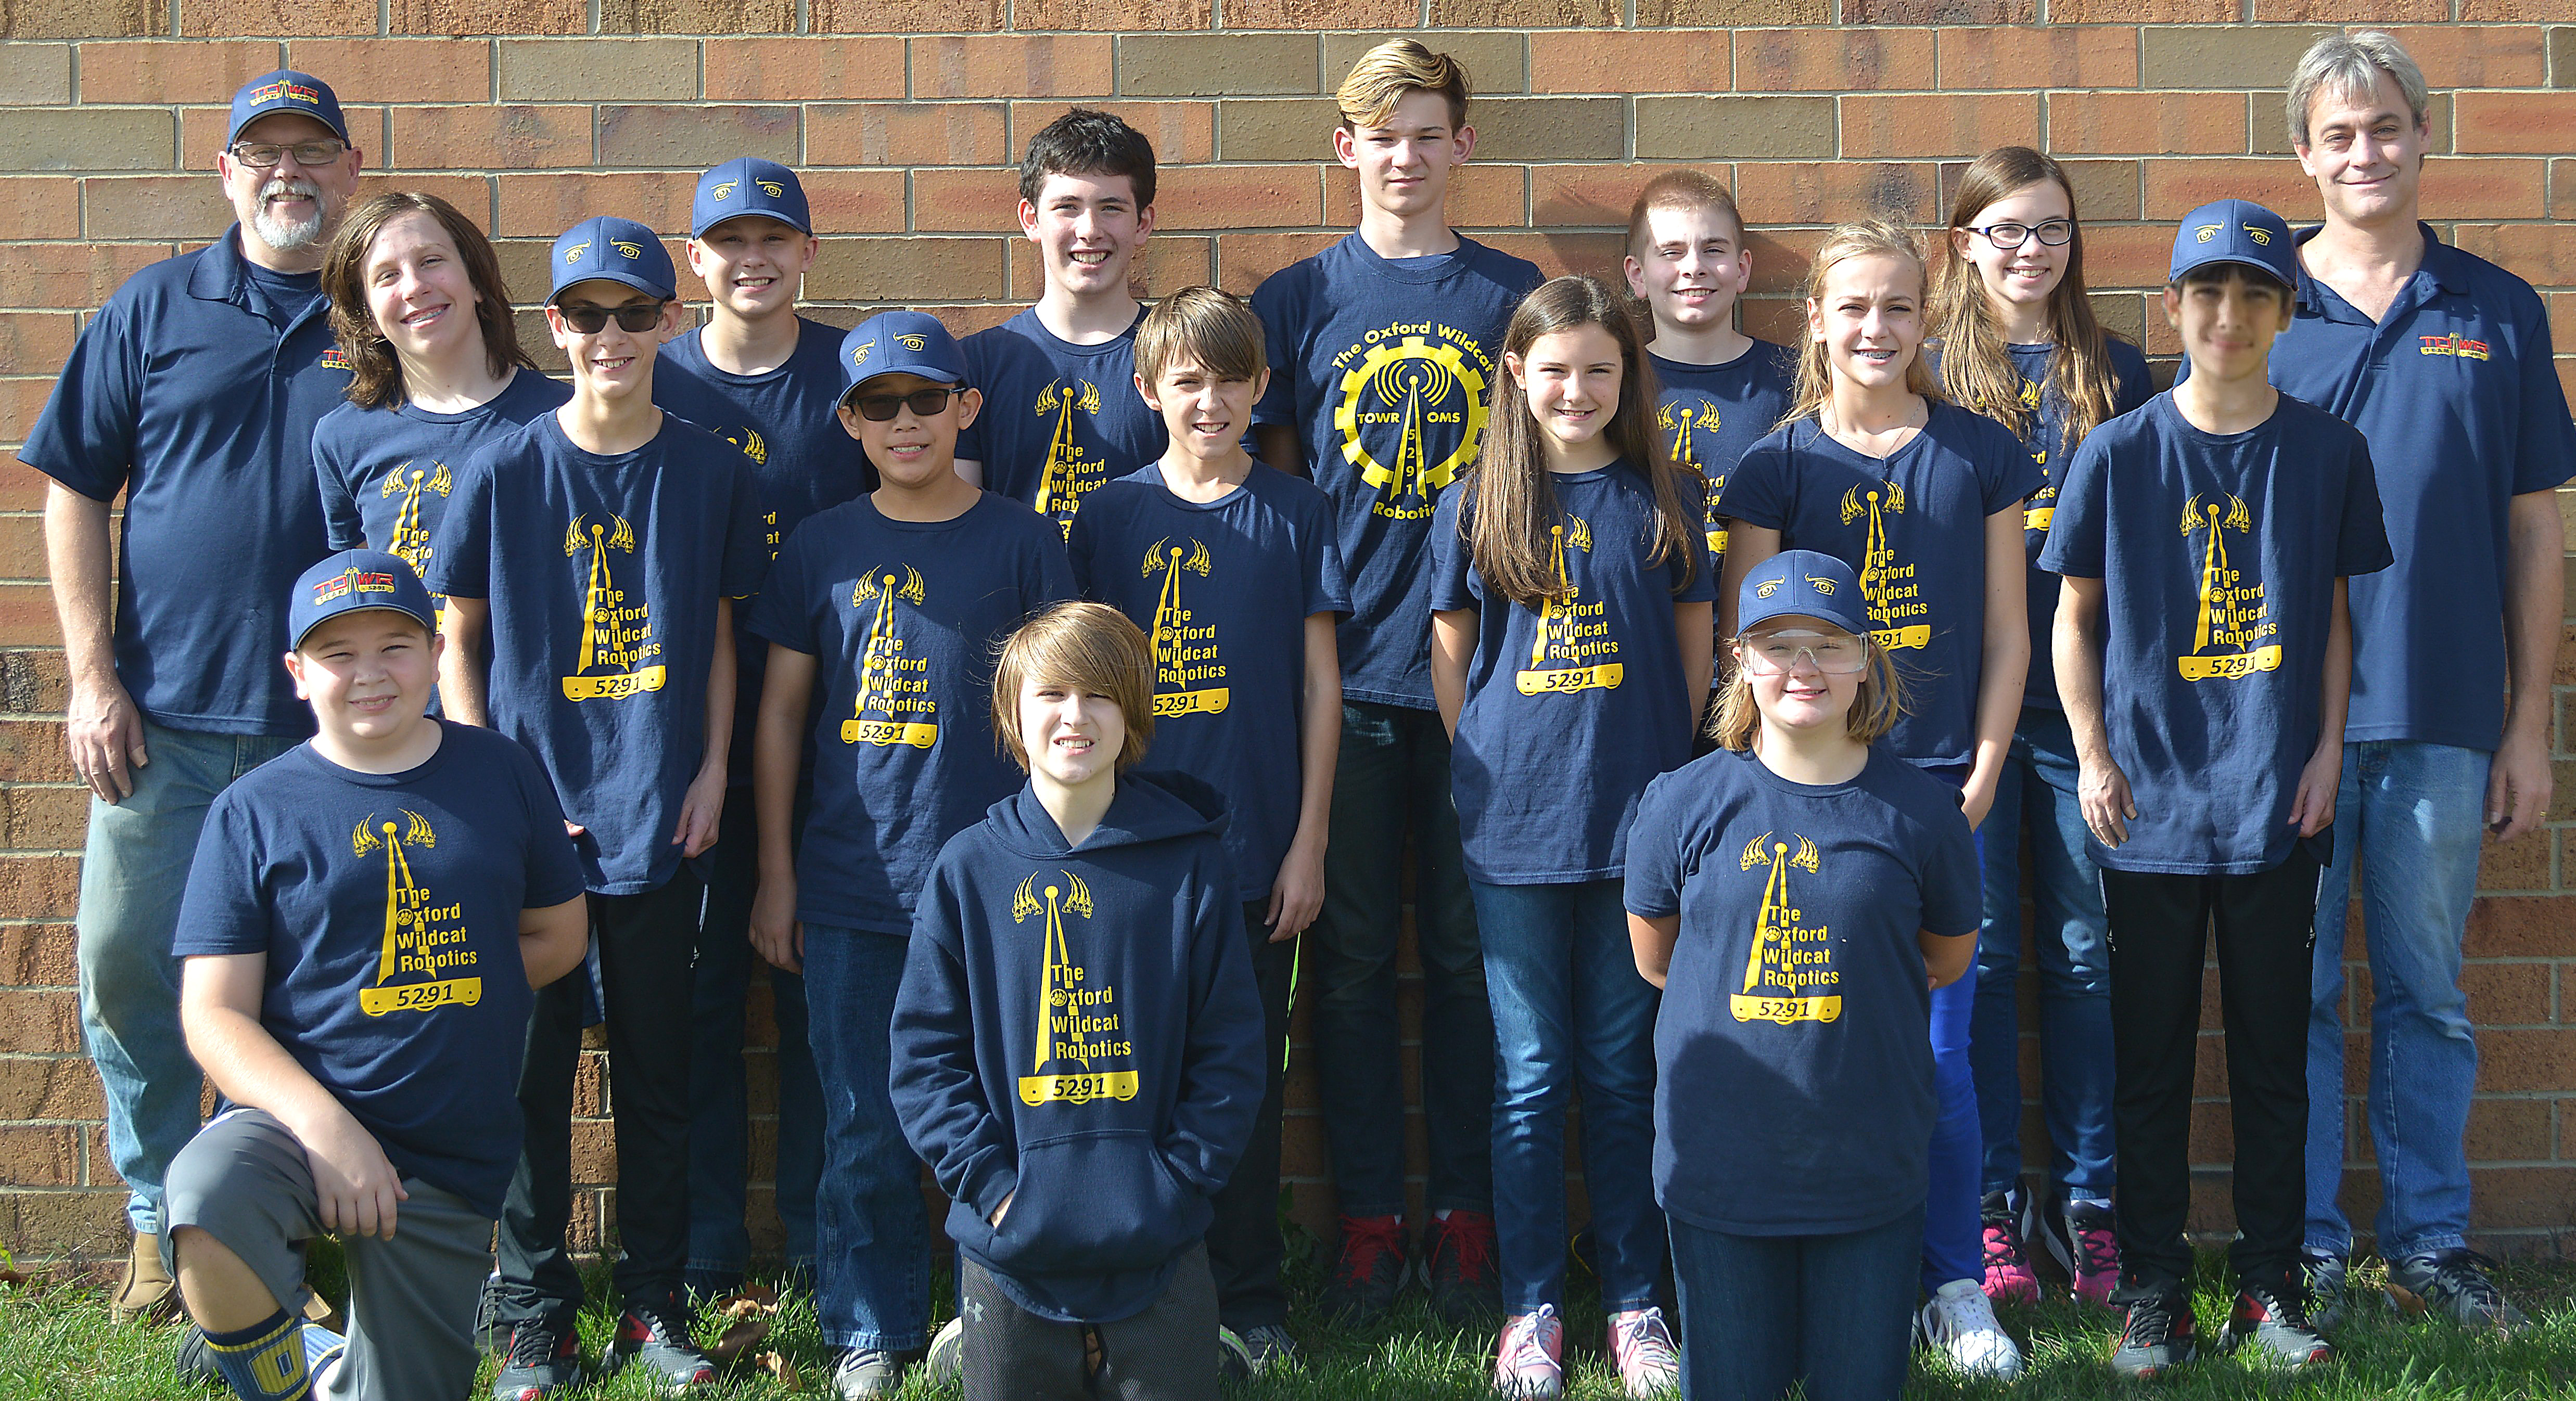 OMS robotics team TOWR 5291 will be one of the competitors at the Dec. 9 event. Photo provided.